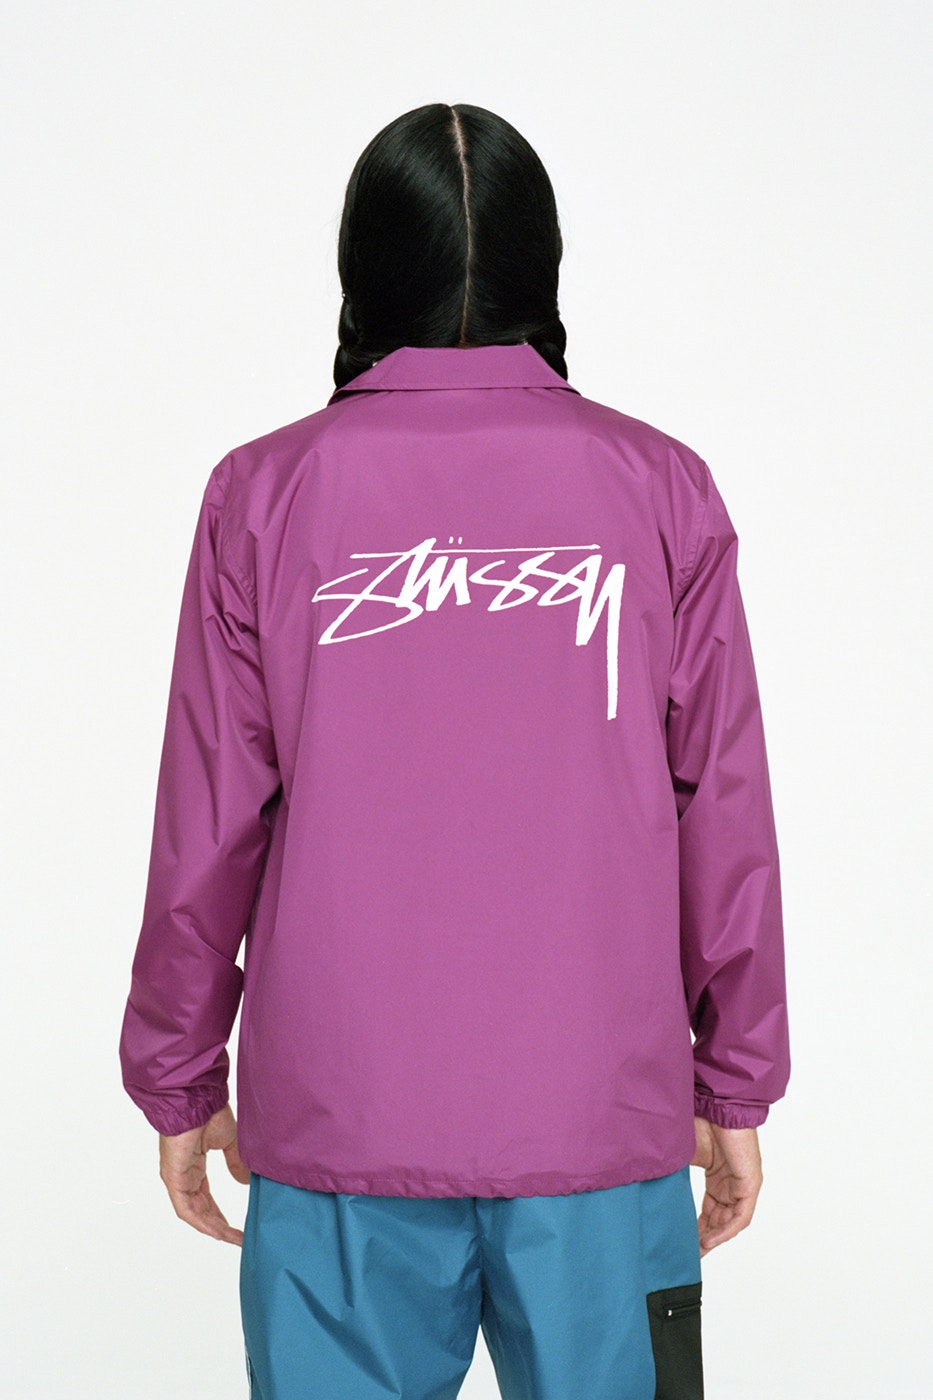 stussy-spring-2018-lookbook-011